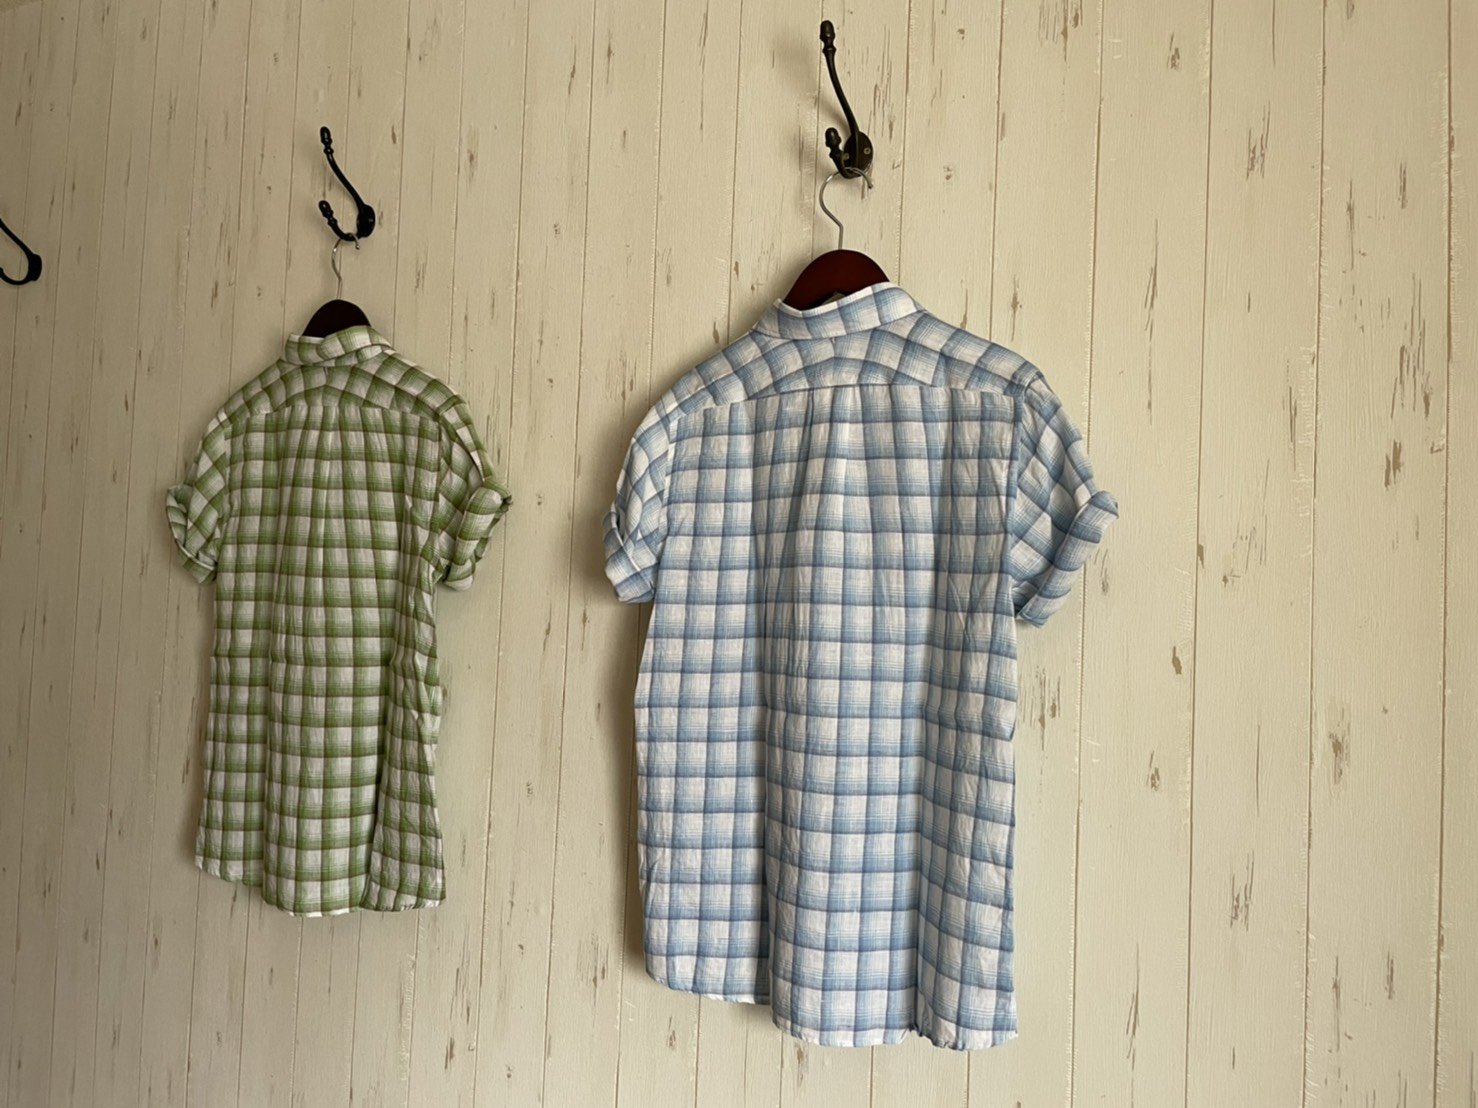 SOUTIENCOL RE-MAKE POLO SHORT SLEEVES NEW